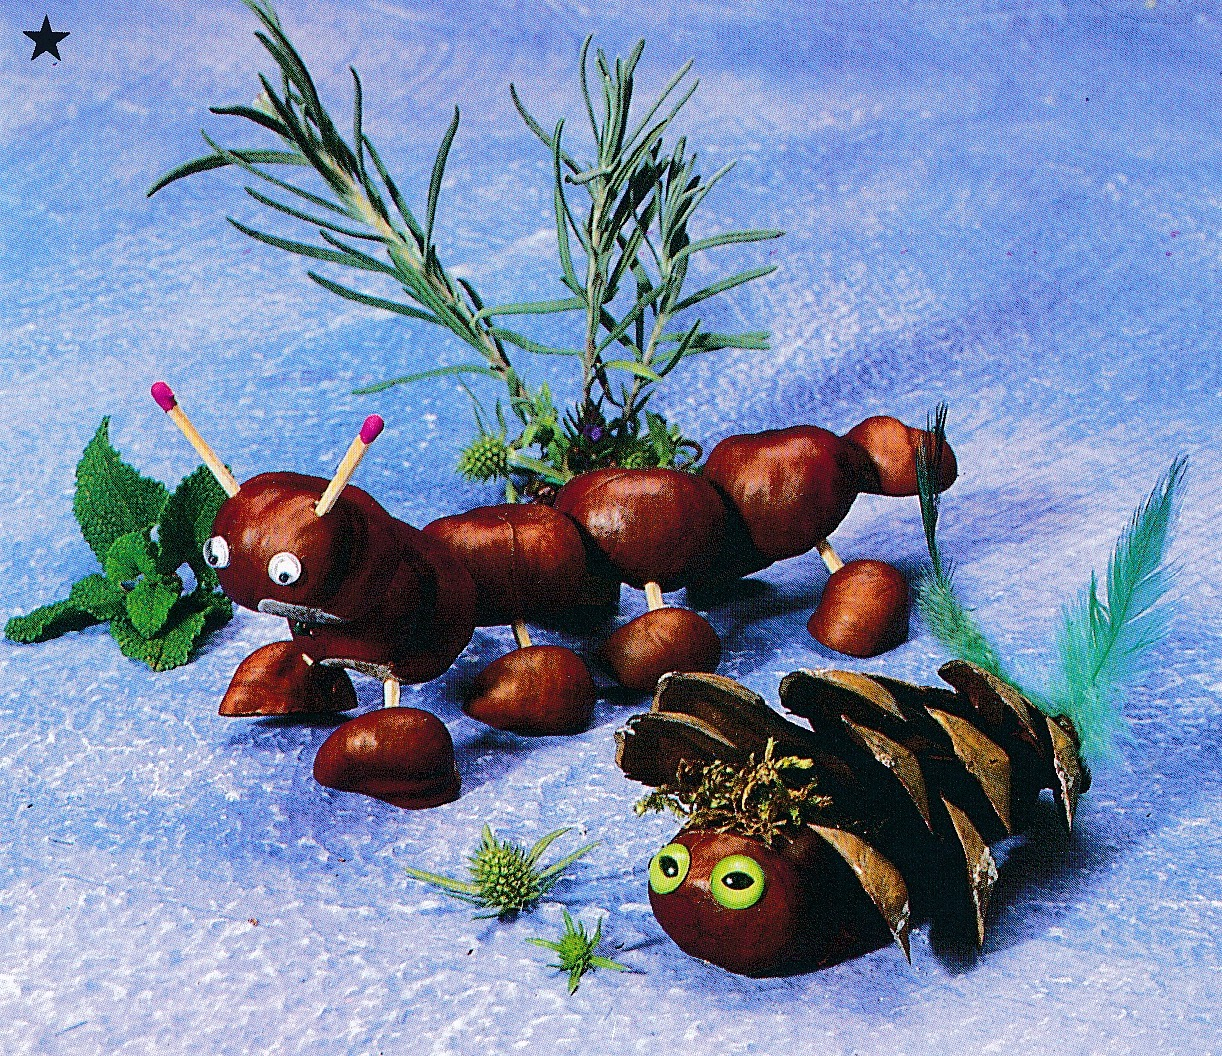 animals made of conkers